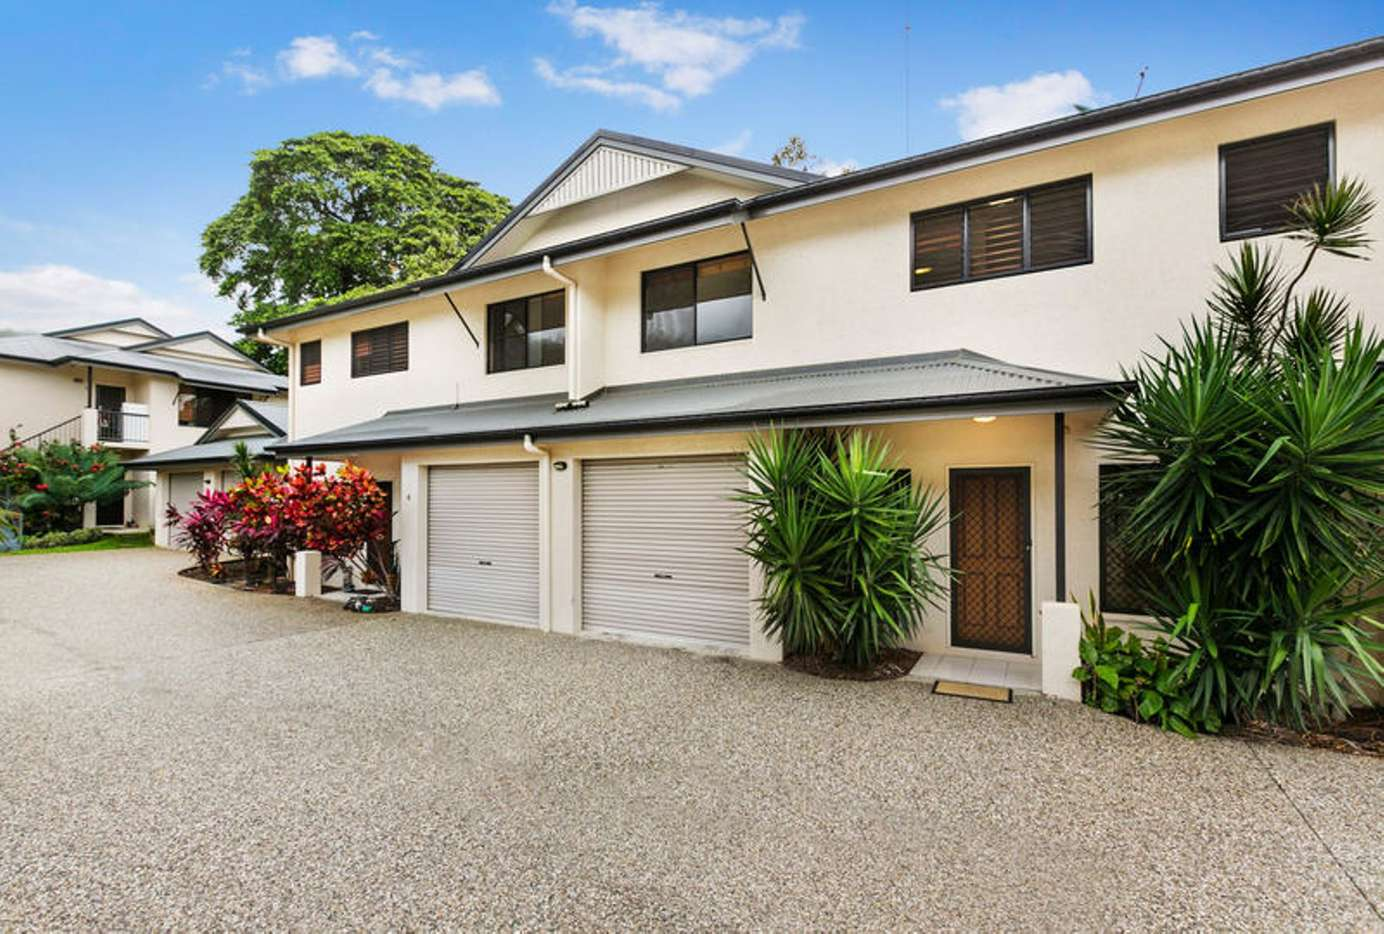 Main view of Homely apartment listing, 7/63 to 65 Kamerunga Road, Stratford, QLD 4870